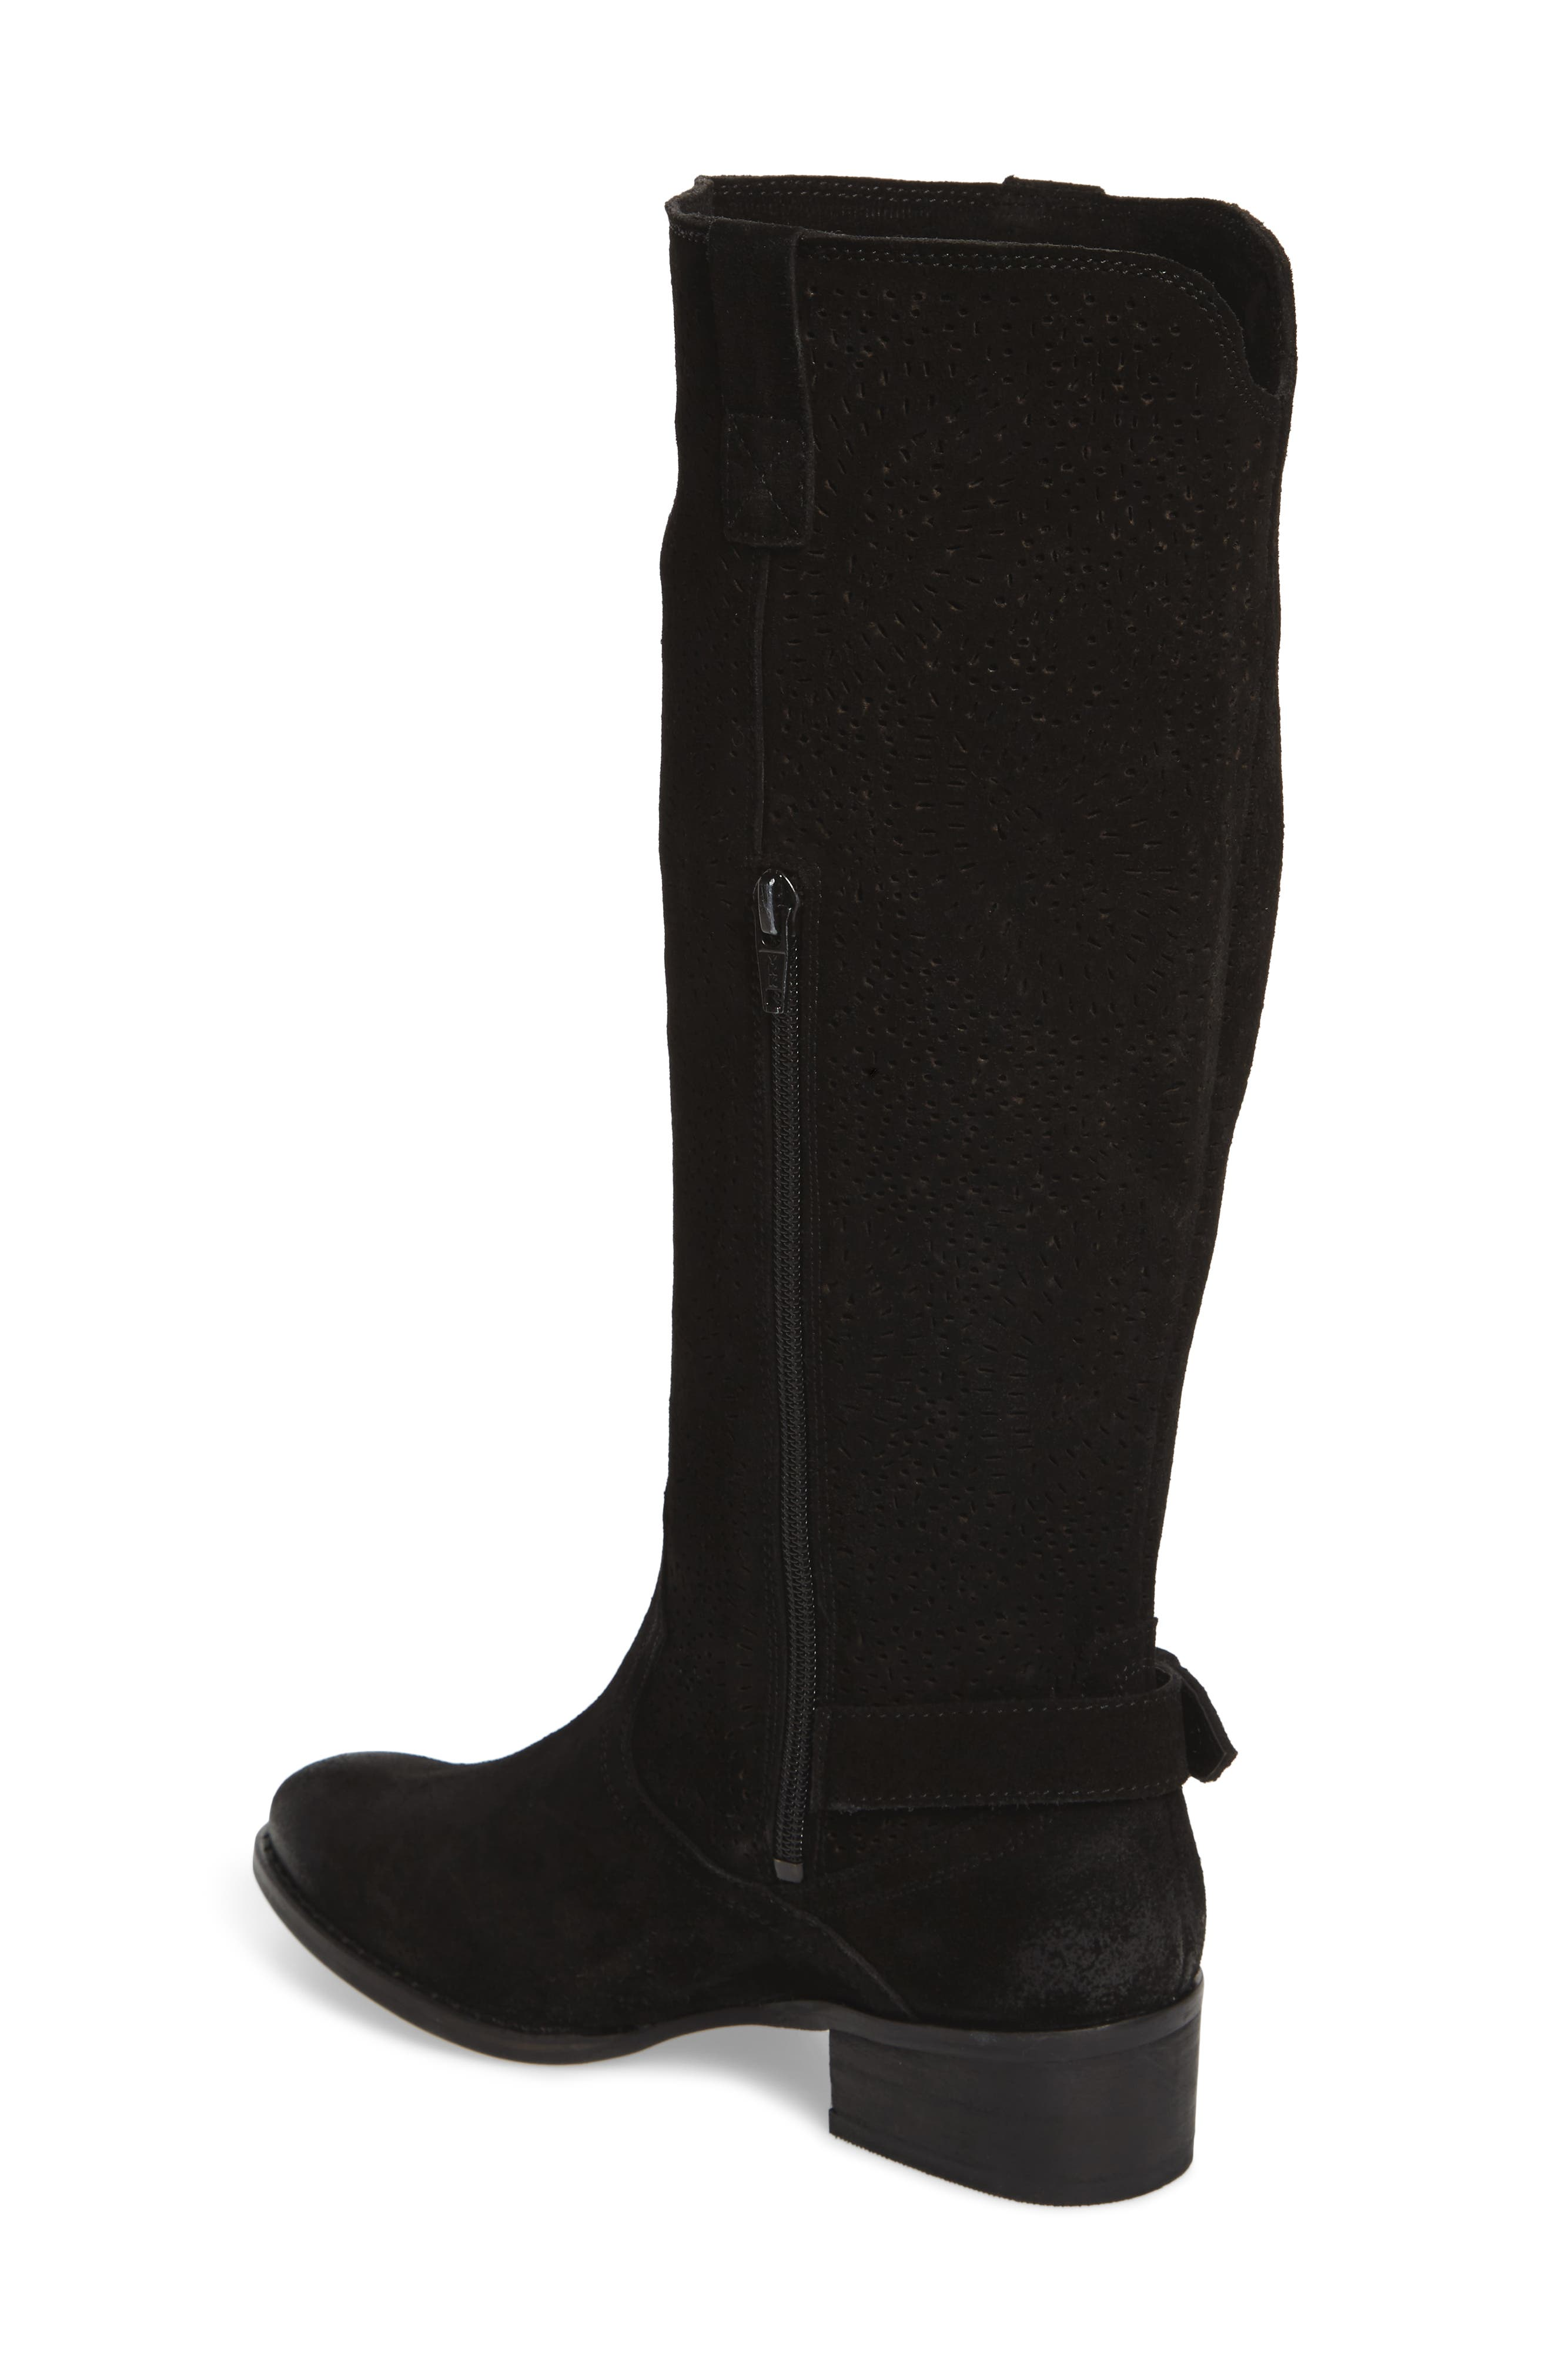 Ziba Tall Boot,                             Alternate thumbnail 2, color,                             Black Suede